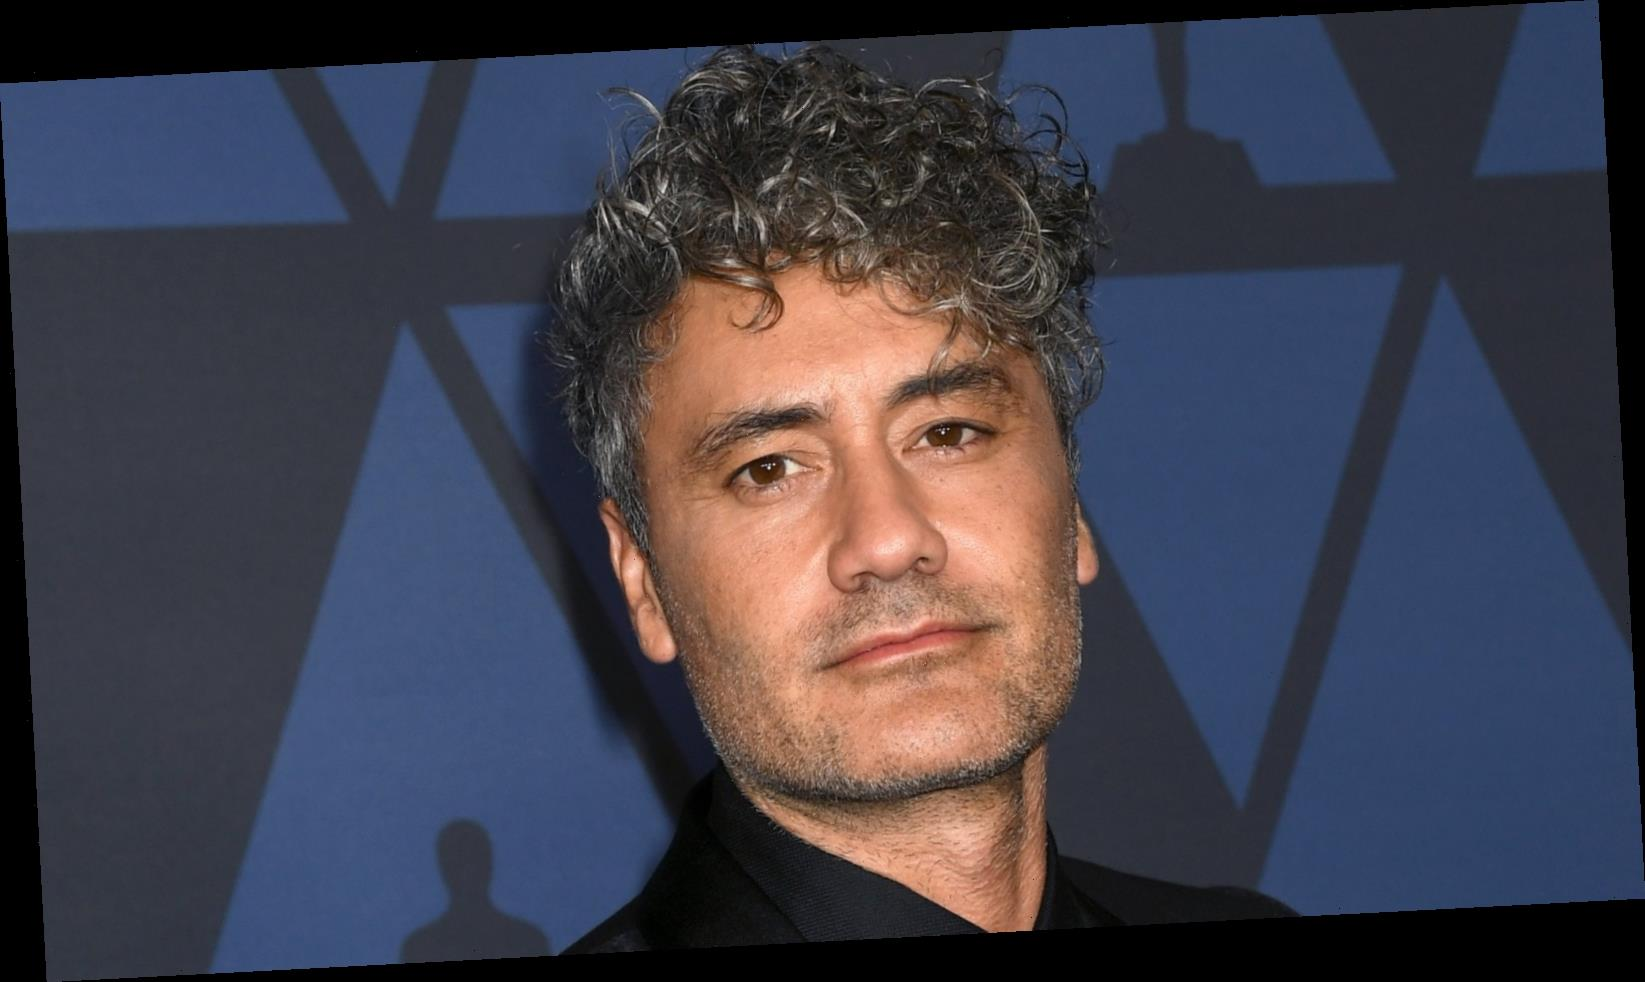 Where does Taika Waititi live and how big is his house?